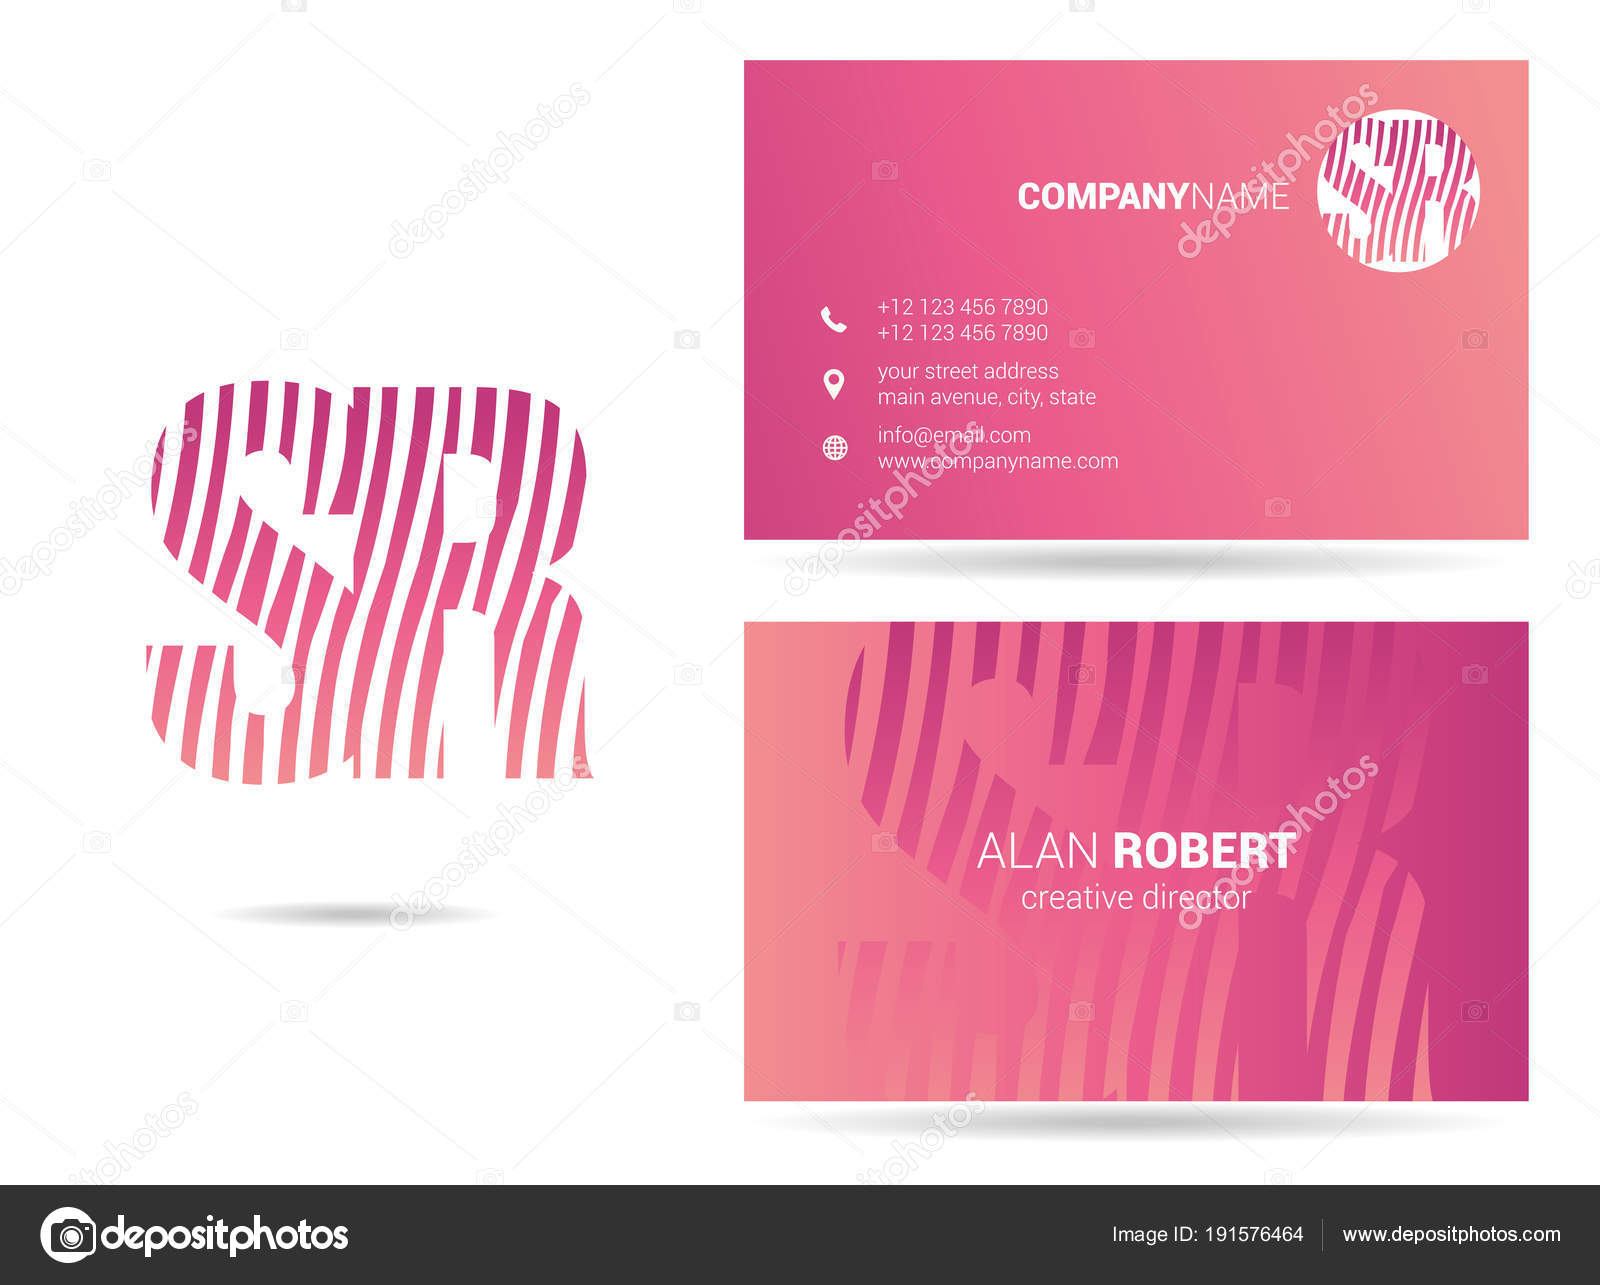 Pink logo design business card template wavy letters stock vector pink logo design business card template wavy letters stock vector maxwellsz